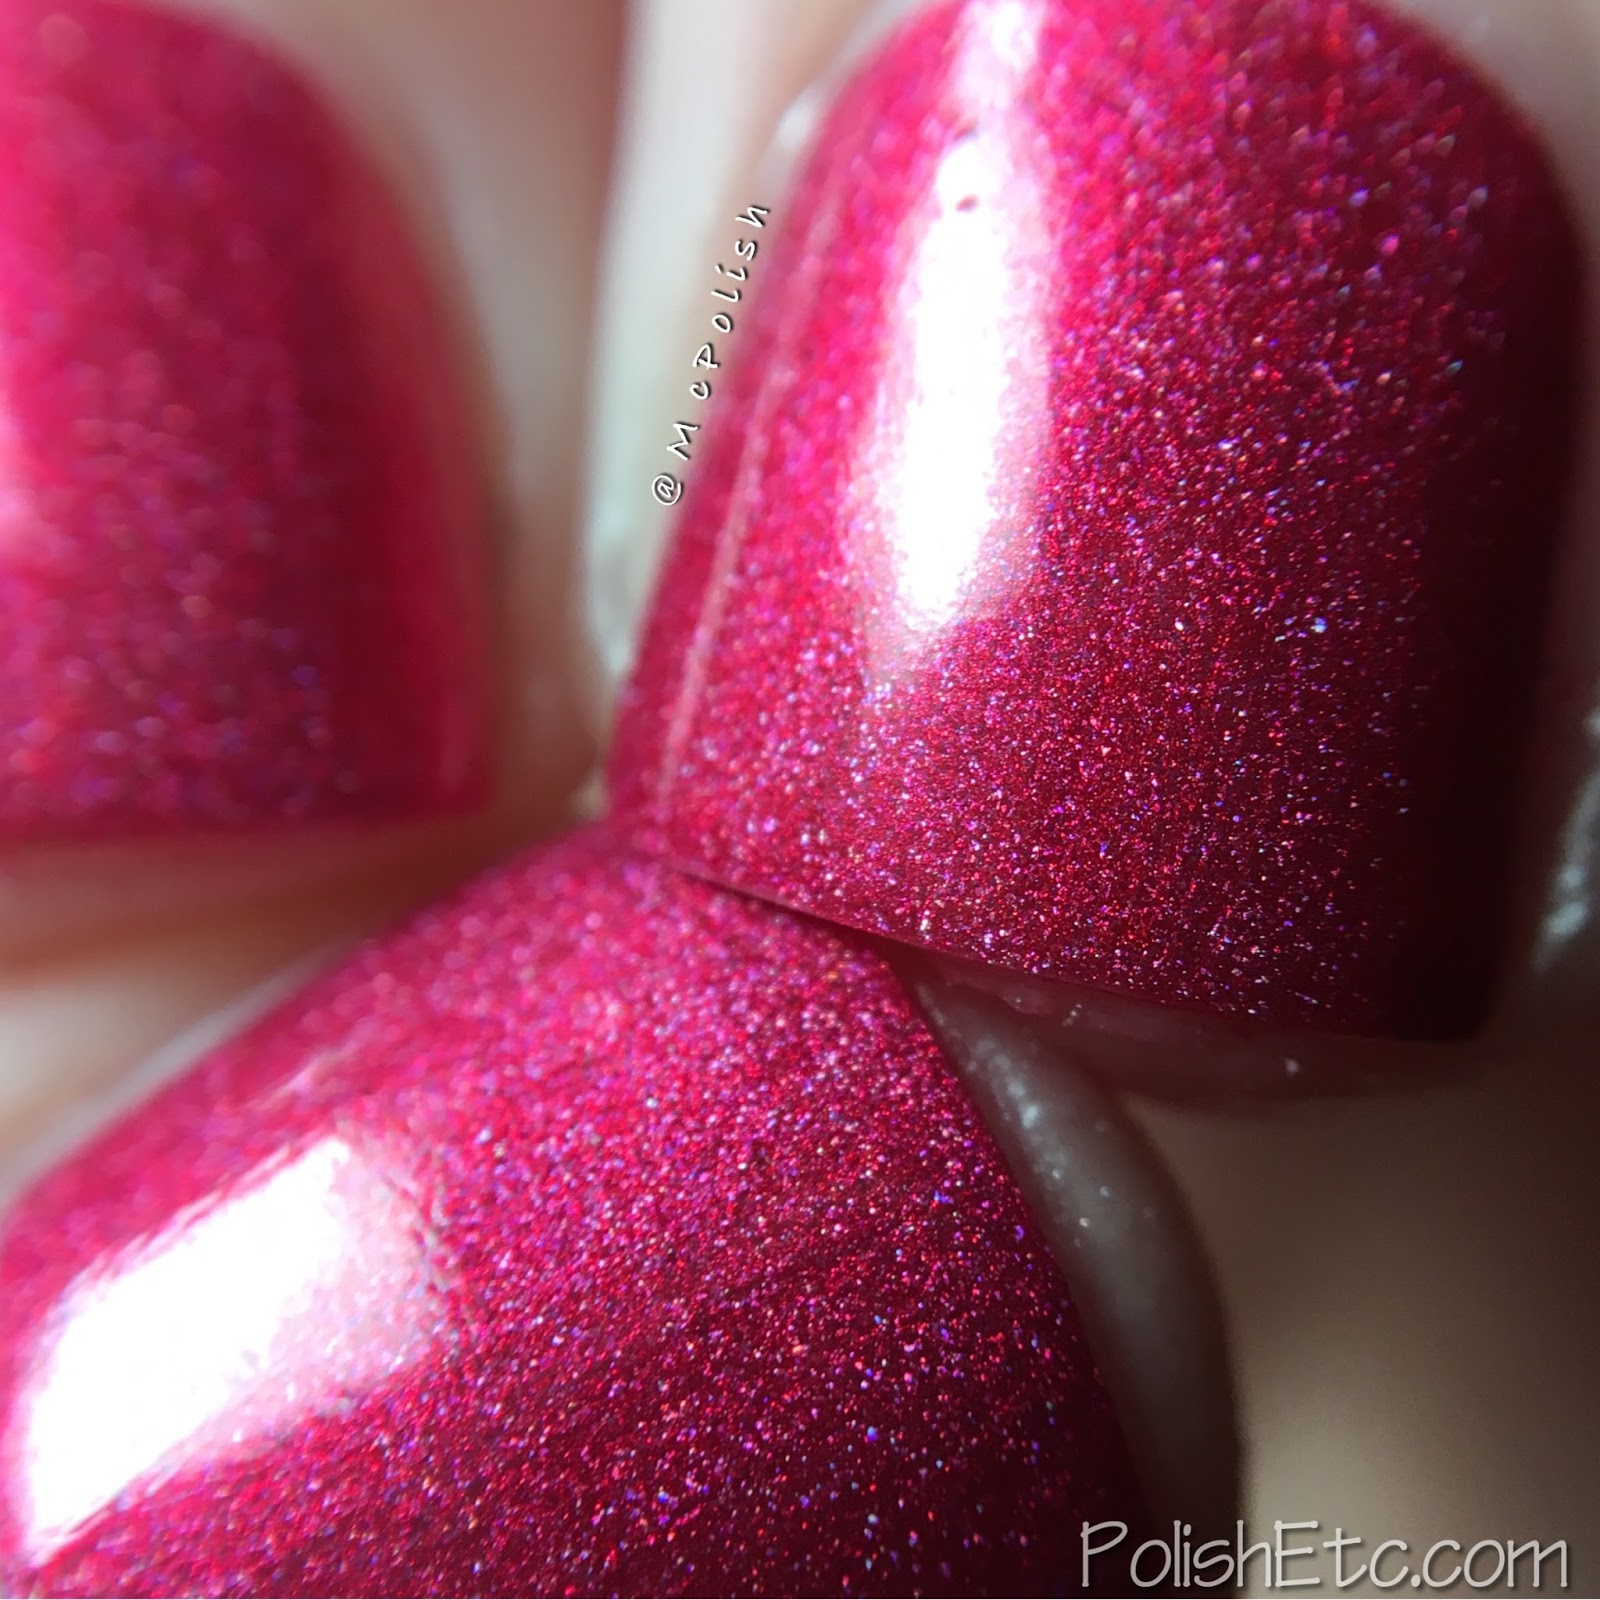 A England - Tennyson's Romance Collection - McPolish - Shall Be My Queen